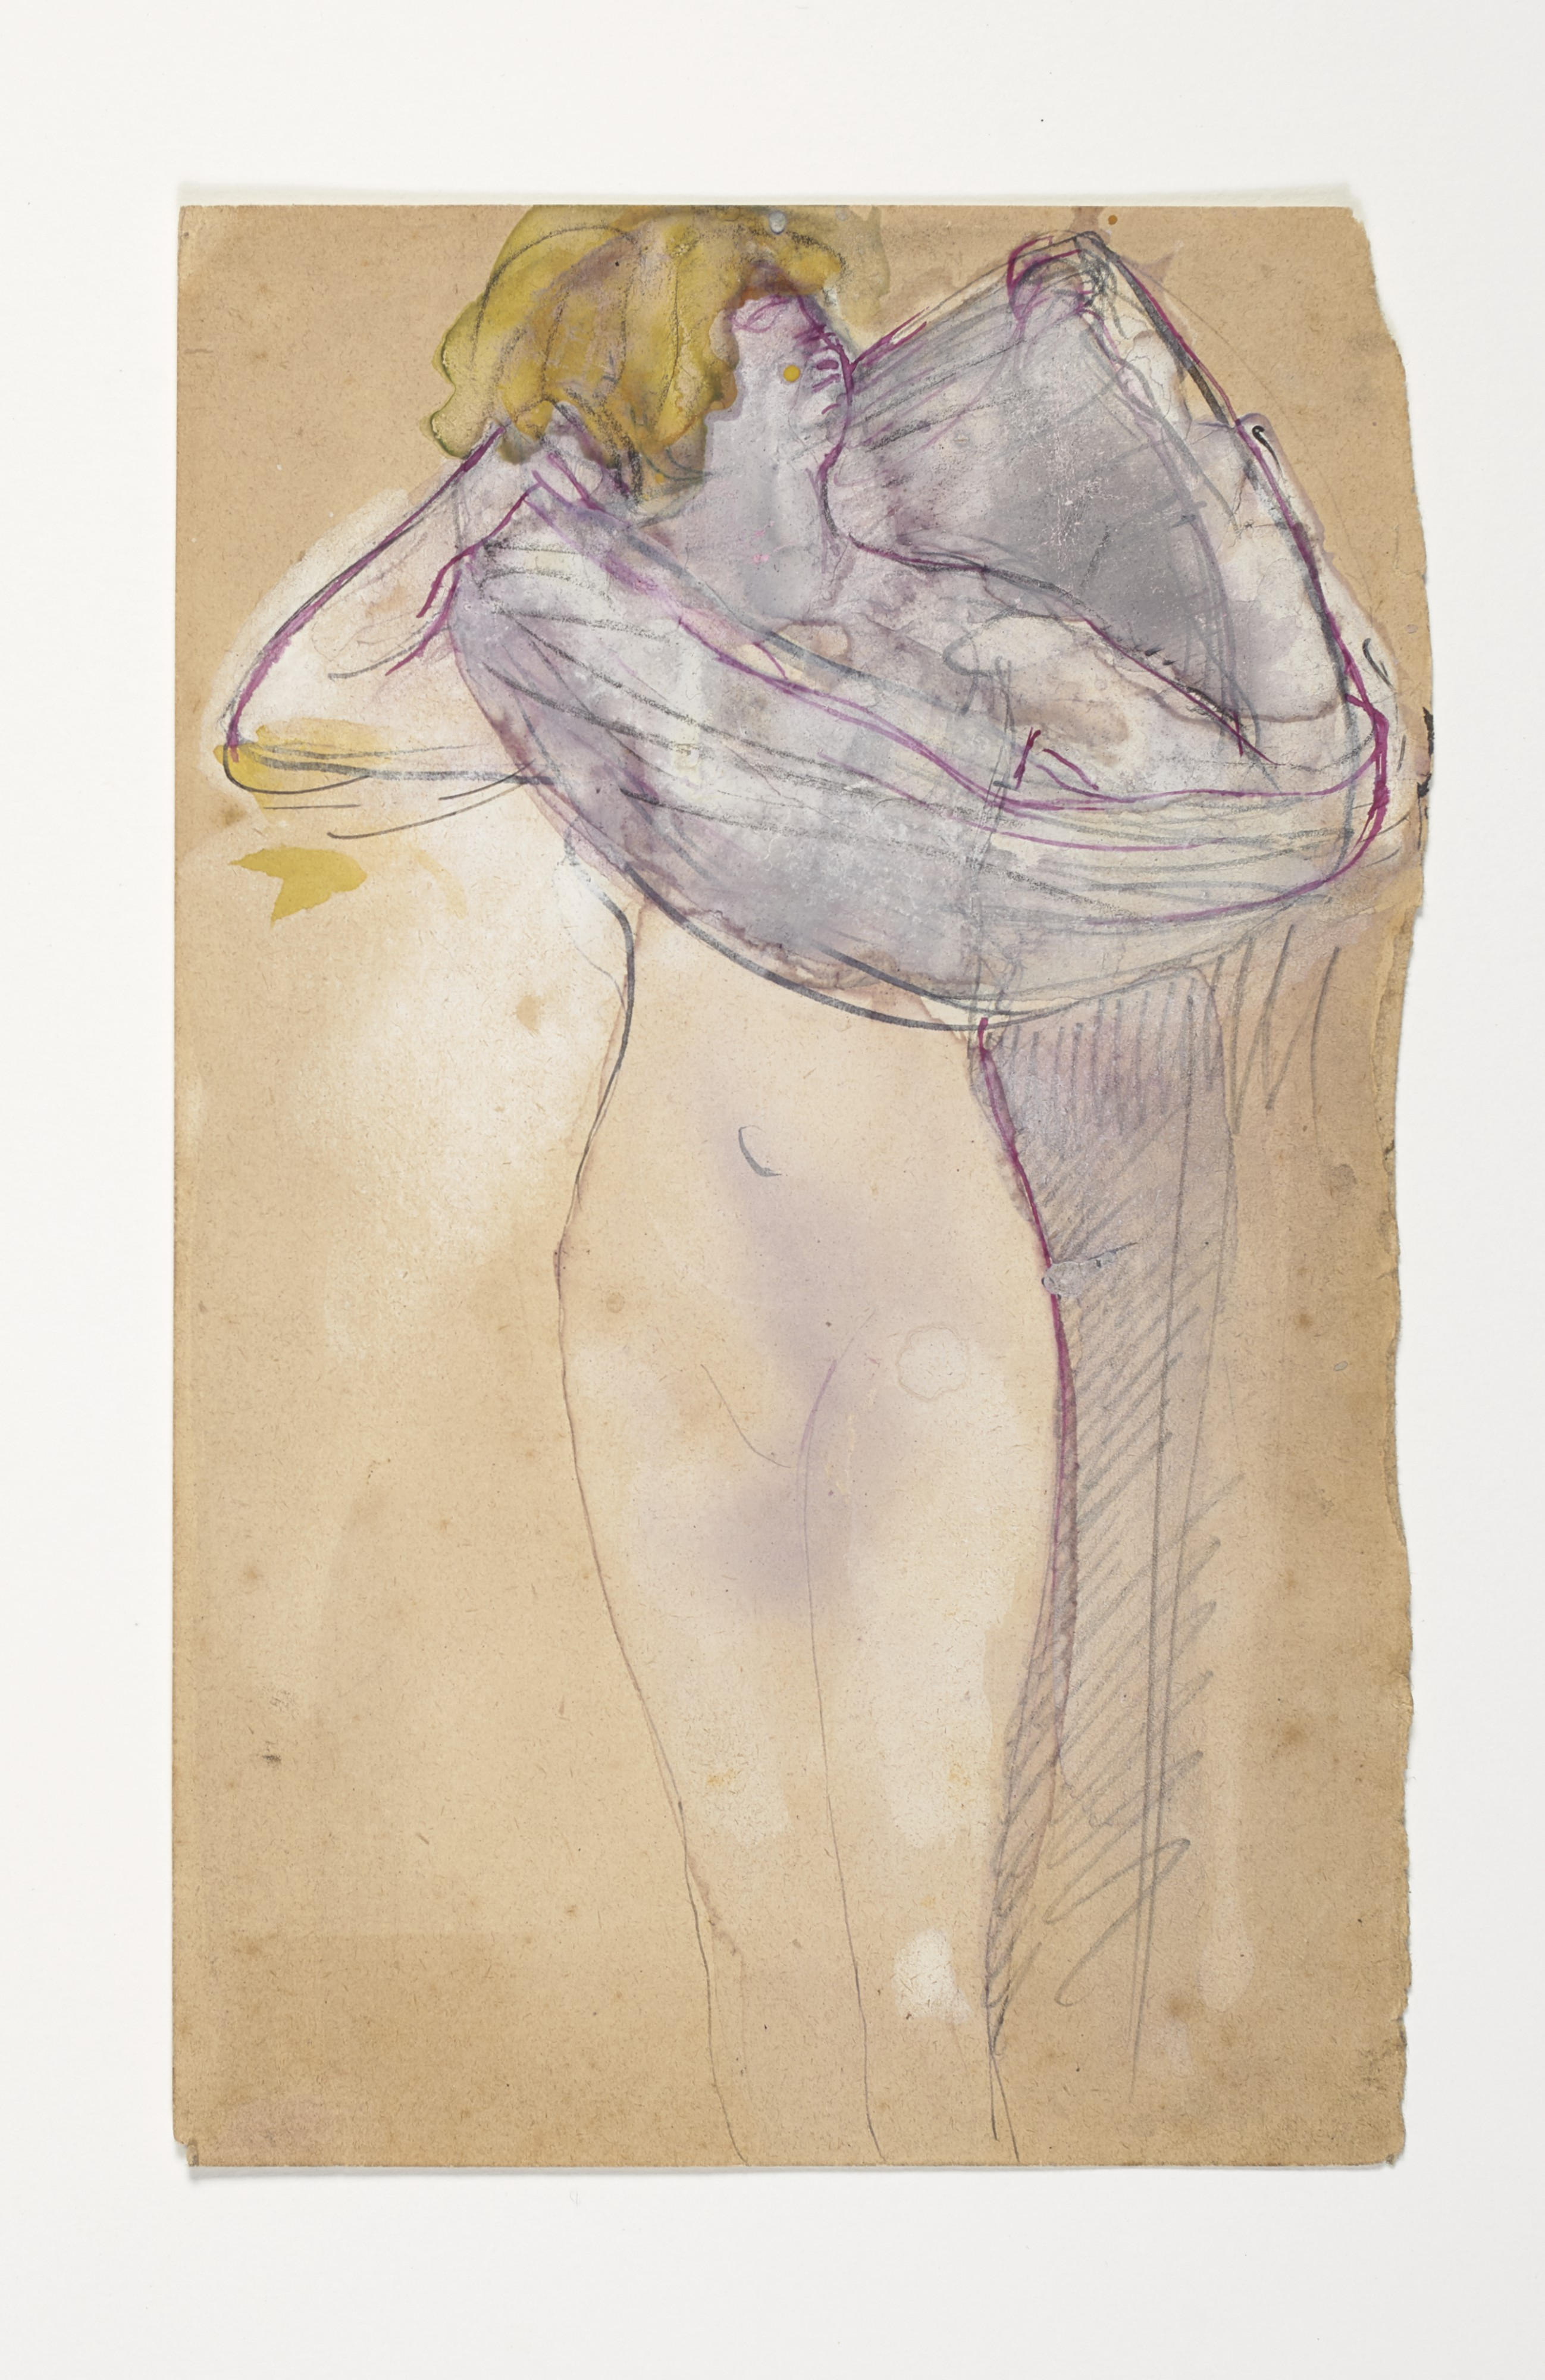 Lot 24: Auguste Rodin (1840-1917), Salomé. Gouache, watercolor, brown and pink ink and pencil on laid paper. Executed circa 1895-97. Estimate : $50,000 - $80,000. ©Christie's Images Ltd, 2017.